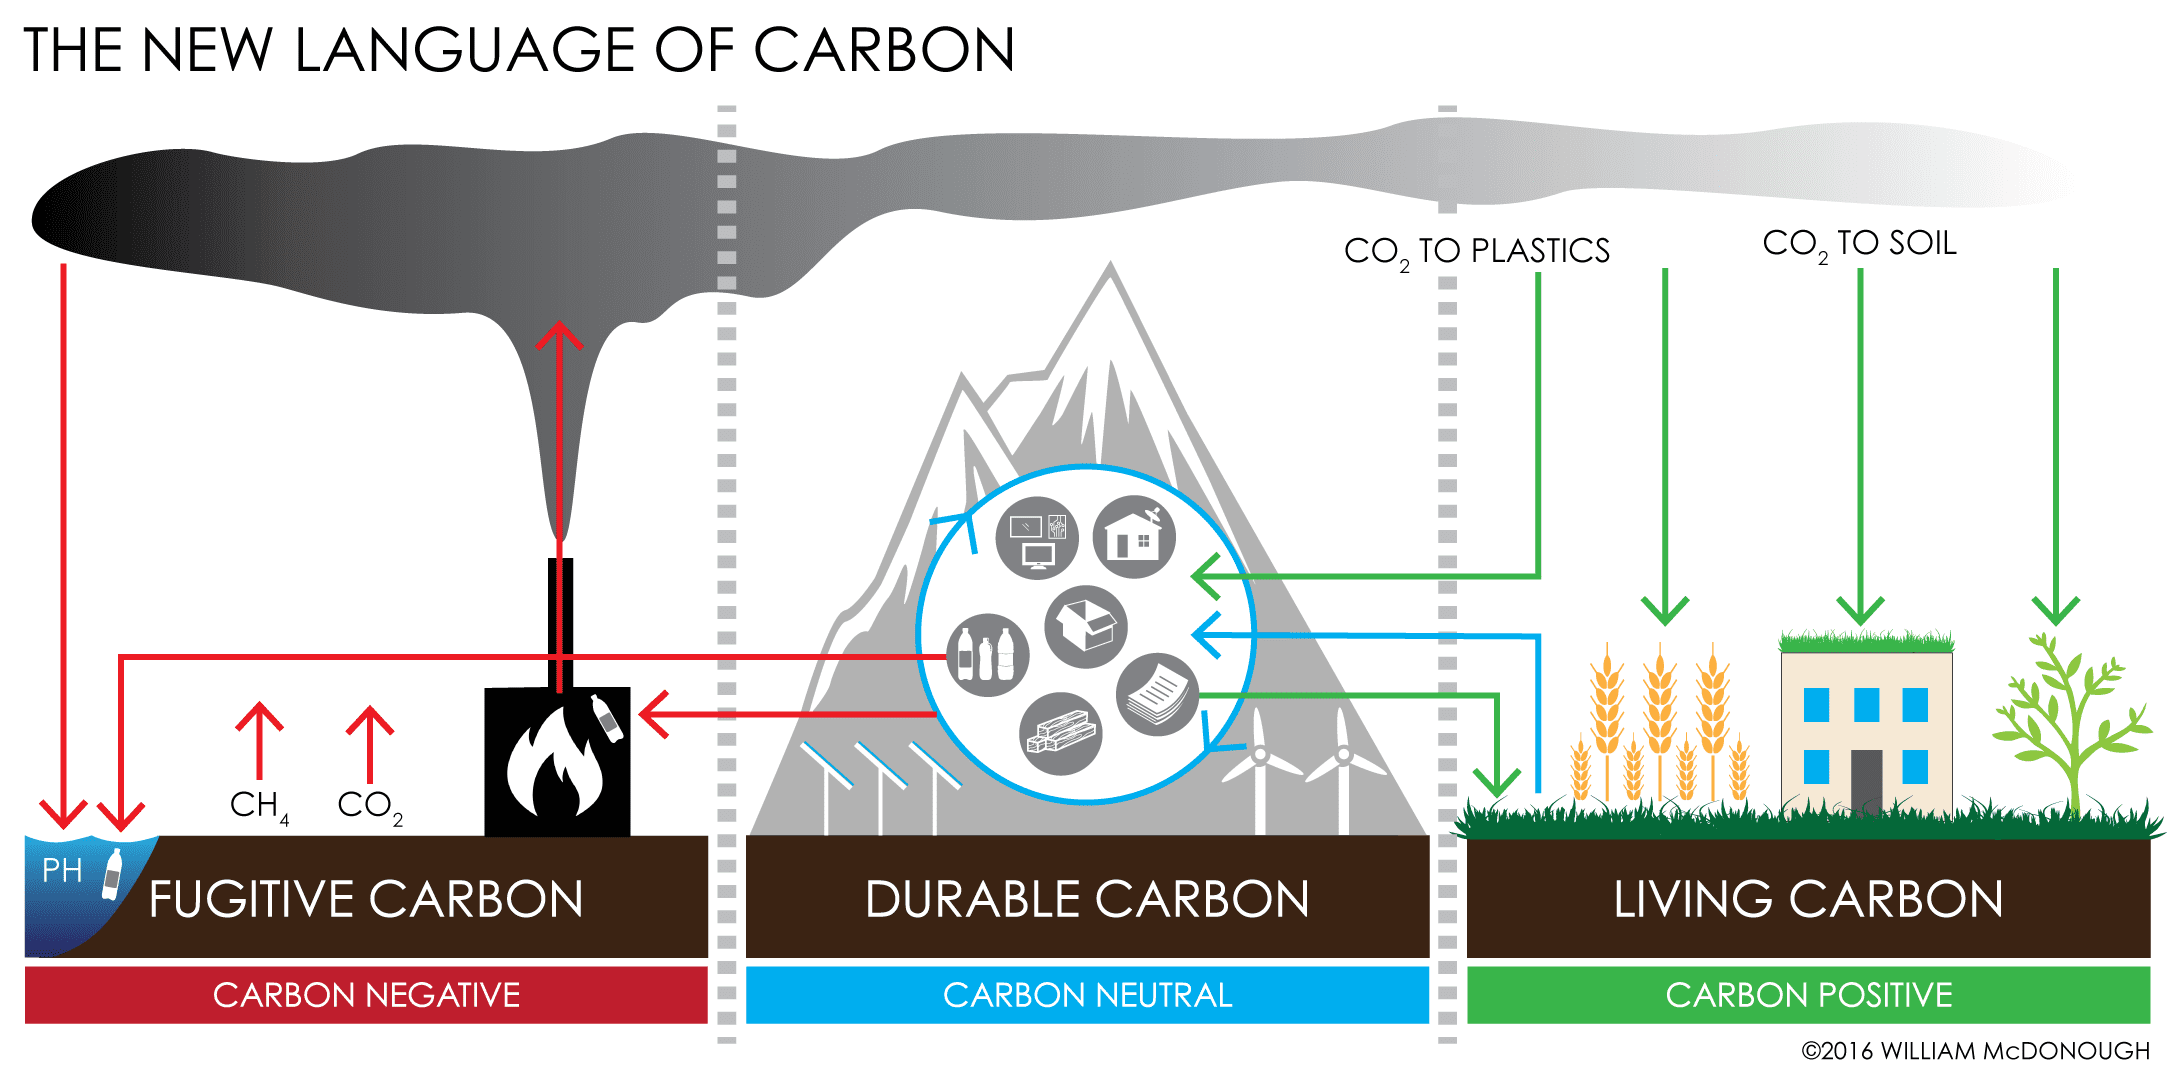 New-Language-of-Carbon-Diagram